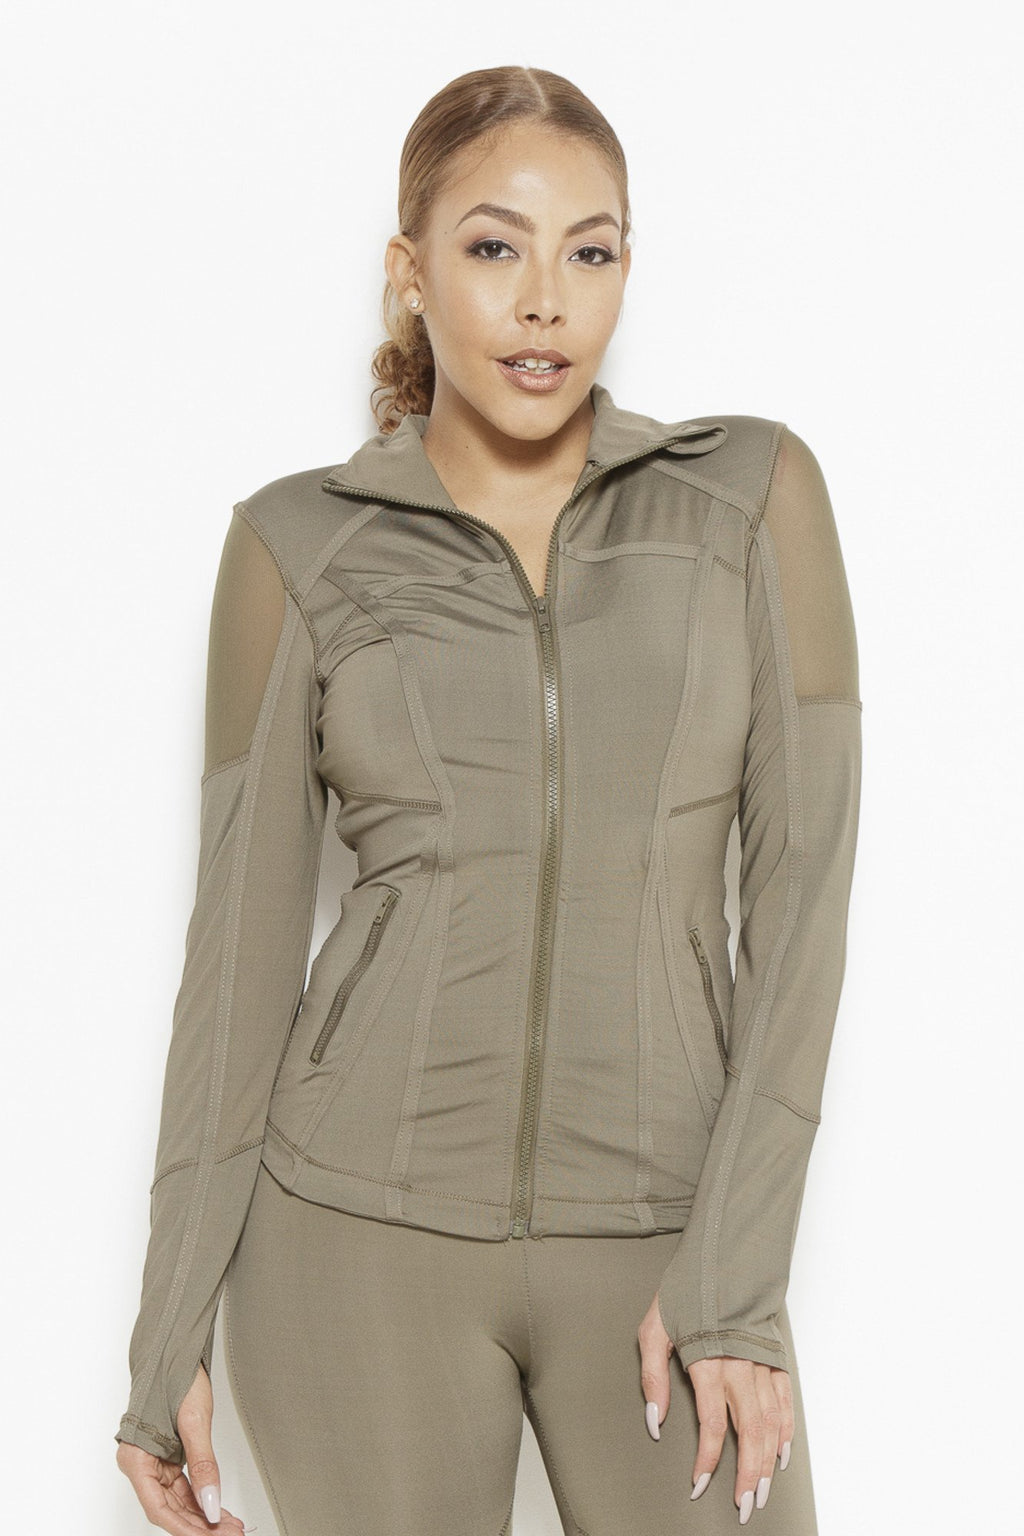 fair-shade - Vibes of Color Sports Jacket- Olive Green - Clothing